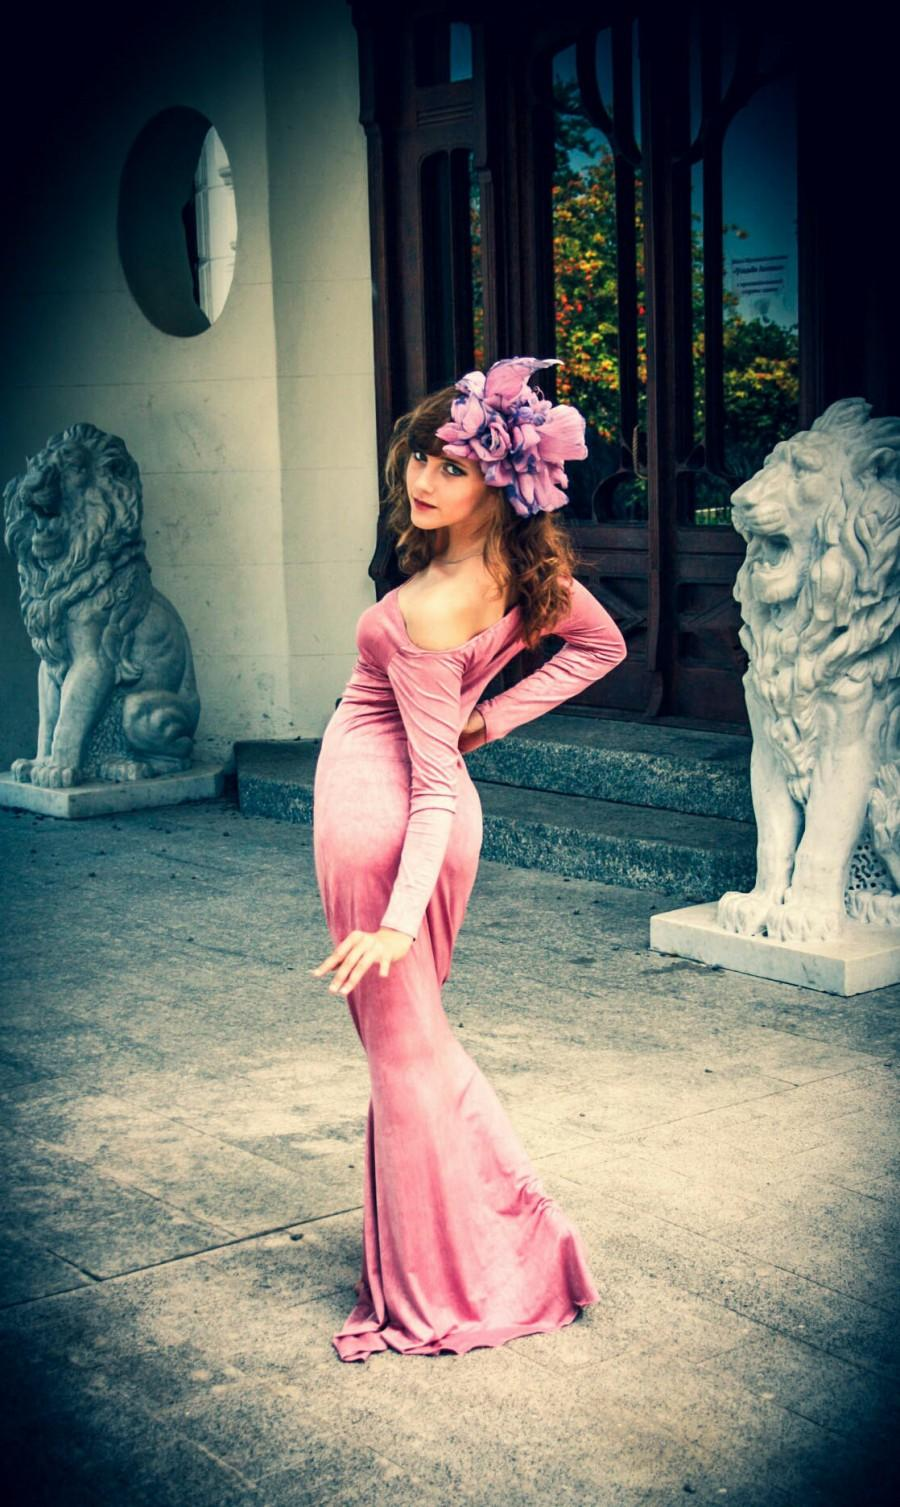 Свадьба - Design headpiece Unique accessory hat with flowers and butterflies dusty rose hat ball gown prom dress pink flower evening sexy dress dances